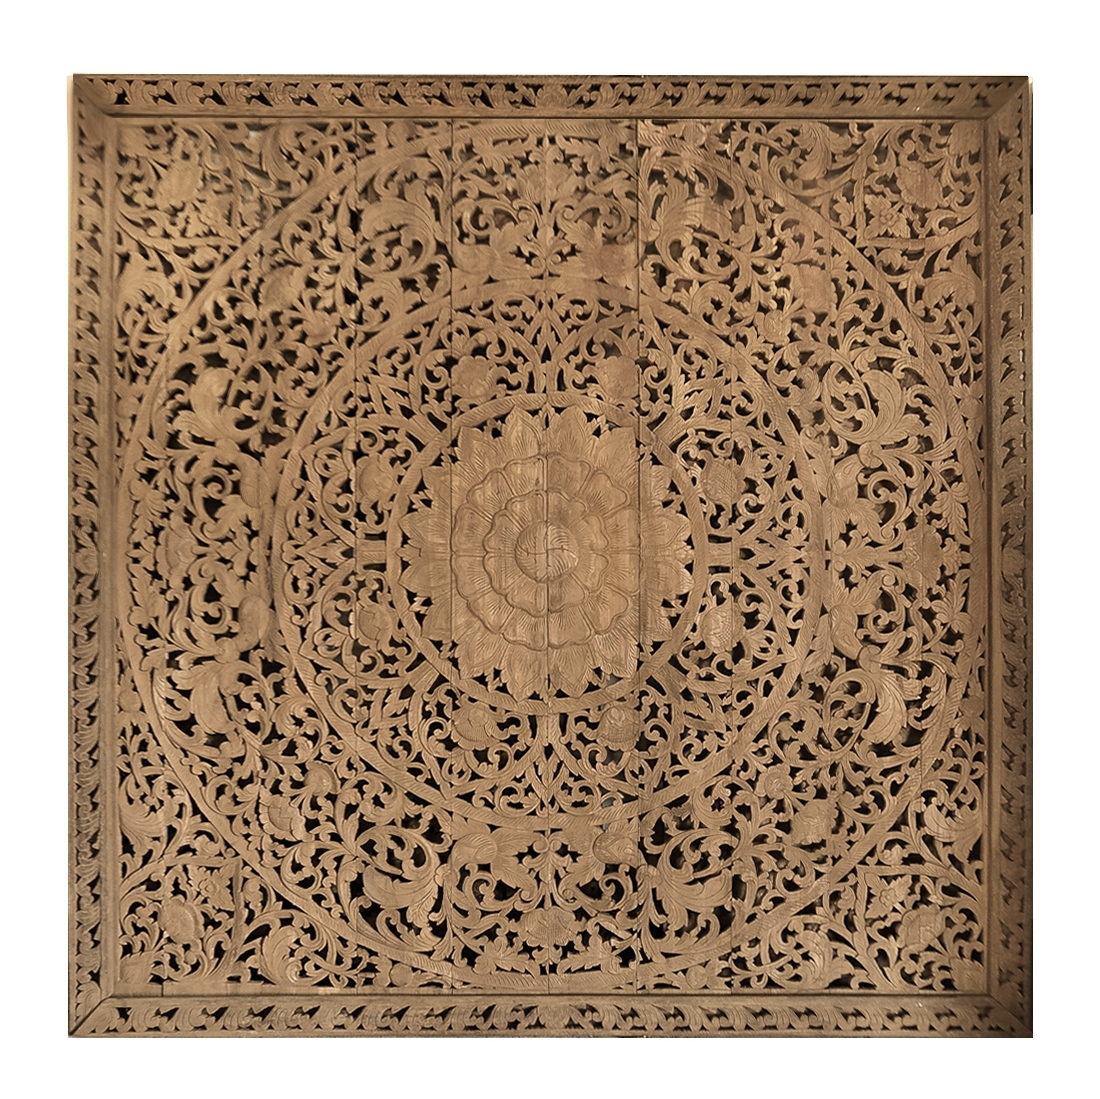 Well Known Wooden Wall Art For Buy Large Grand Carved Wooden Wall Art Or Ceiling Panel Online (View 11 of 15)